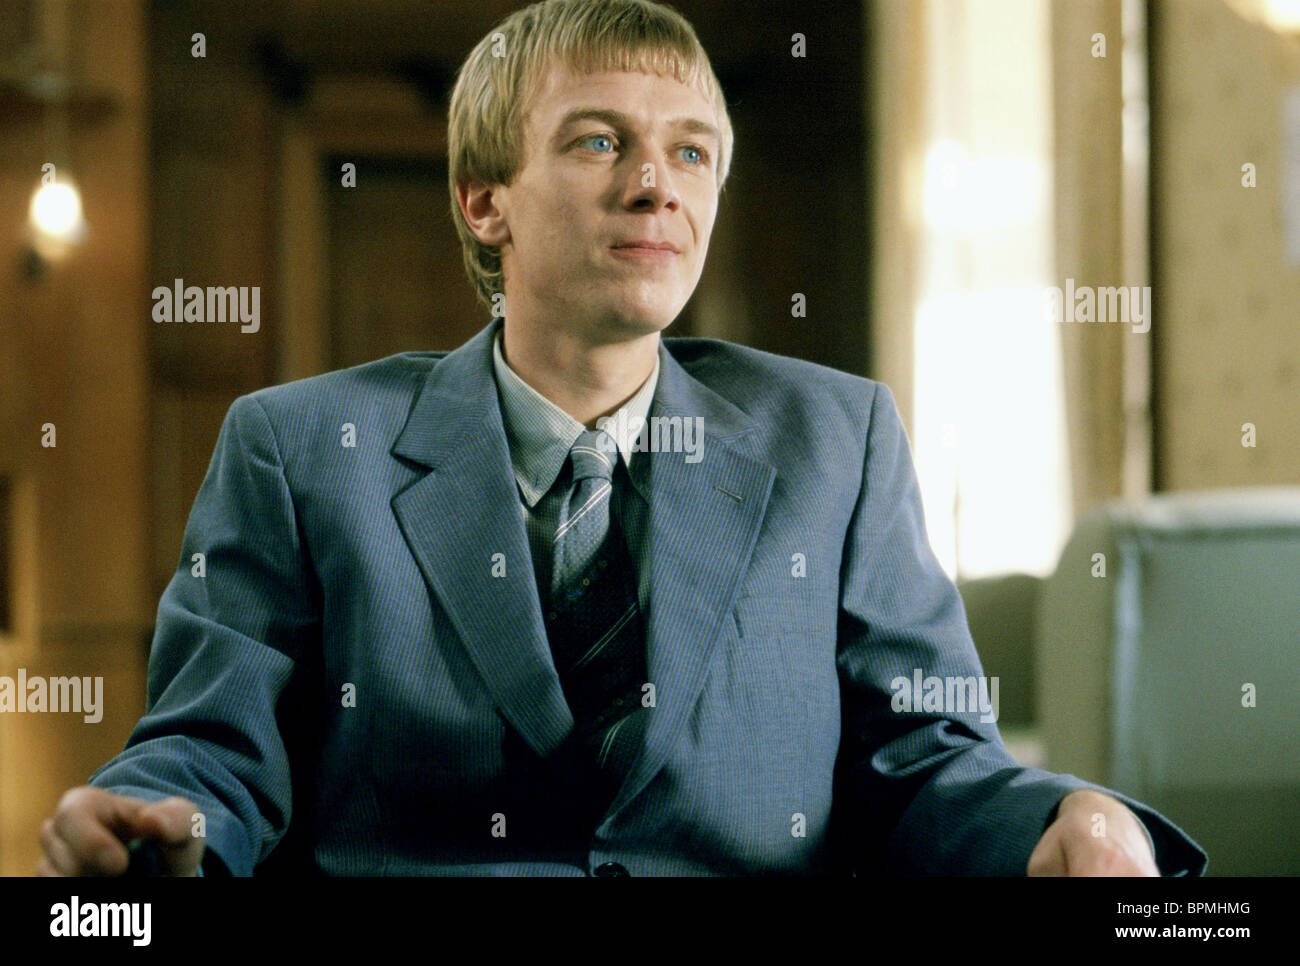 STEVEN ROBERTSON INSIDE I'M DANCING; RORY O'SHEA WAS HERE (2004) - Stock Image